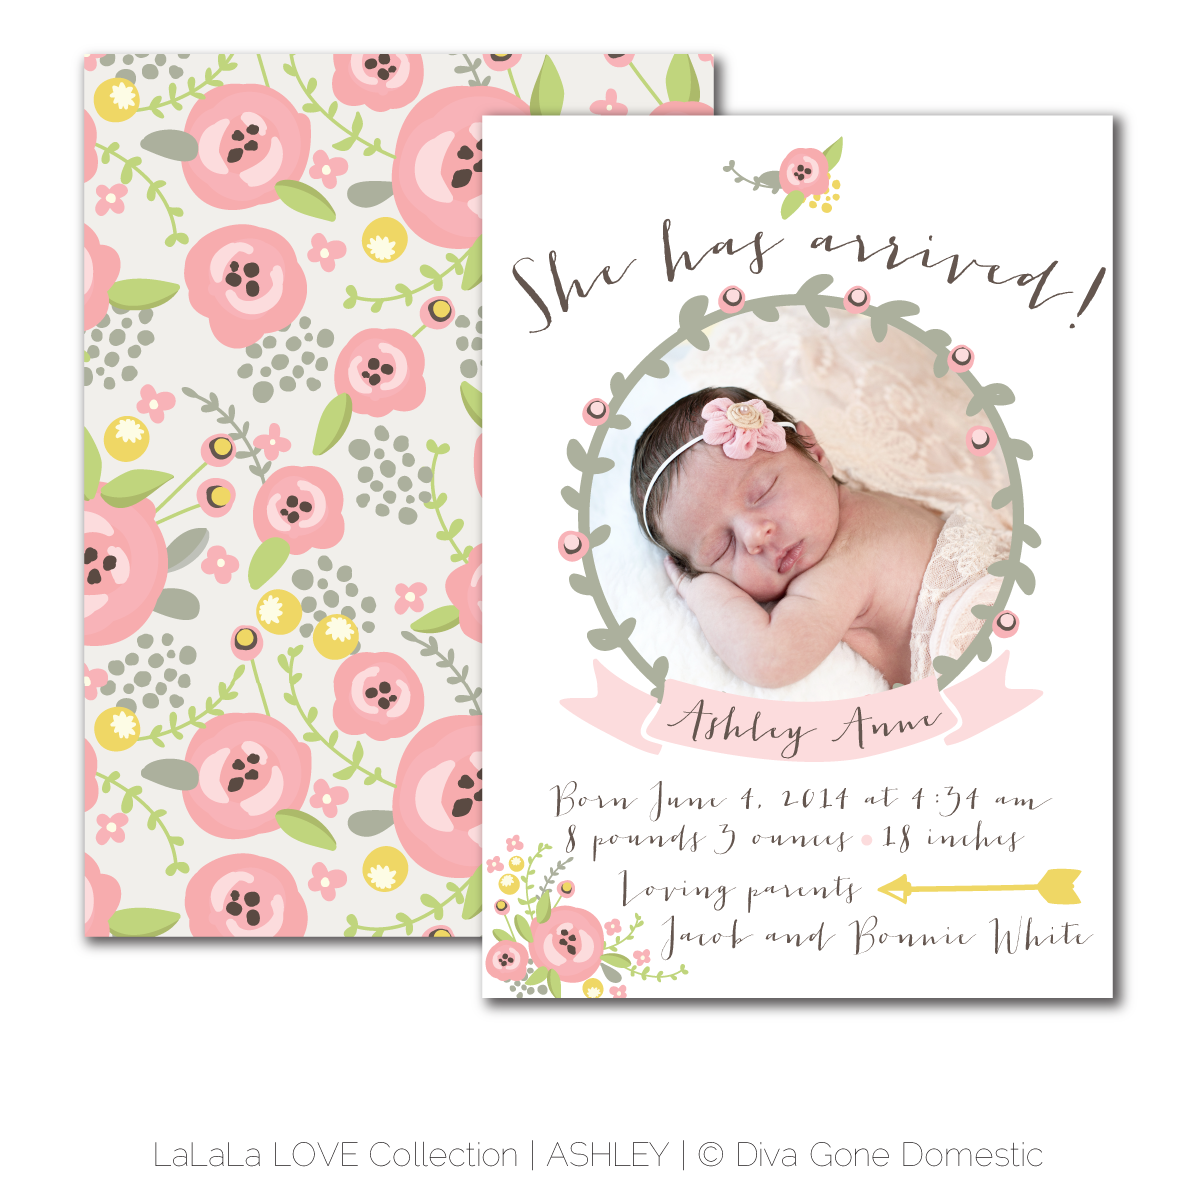 birth announcement png transparent birth announcement png images